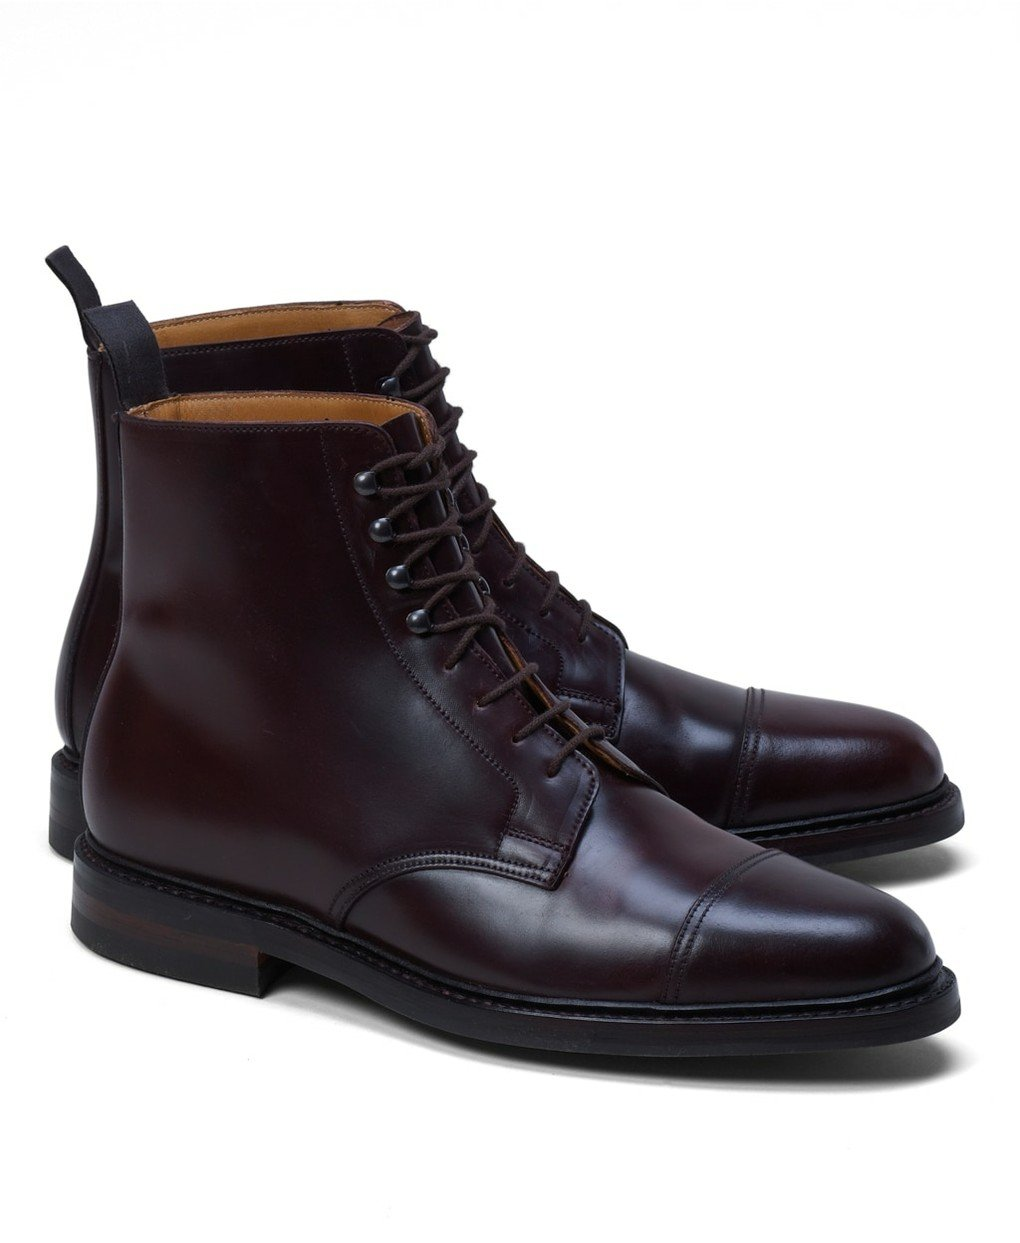 Peal & Co.® Cordovan Boots